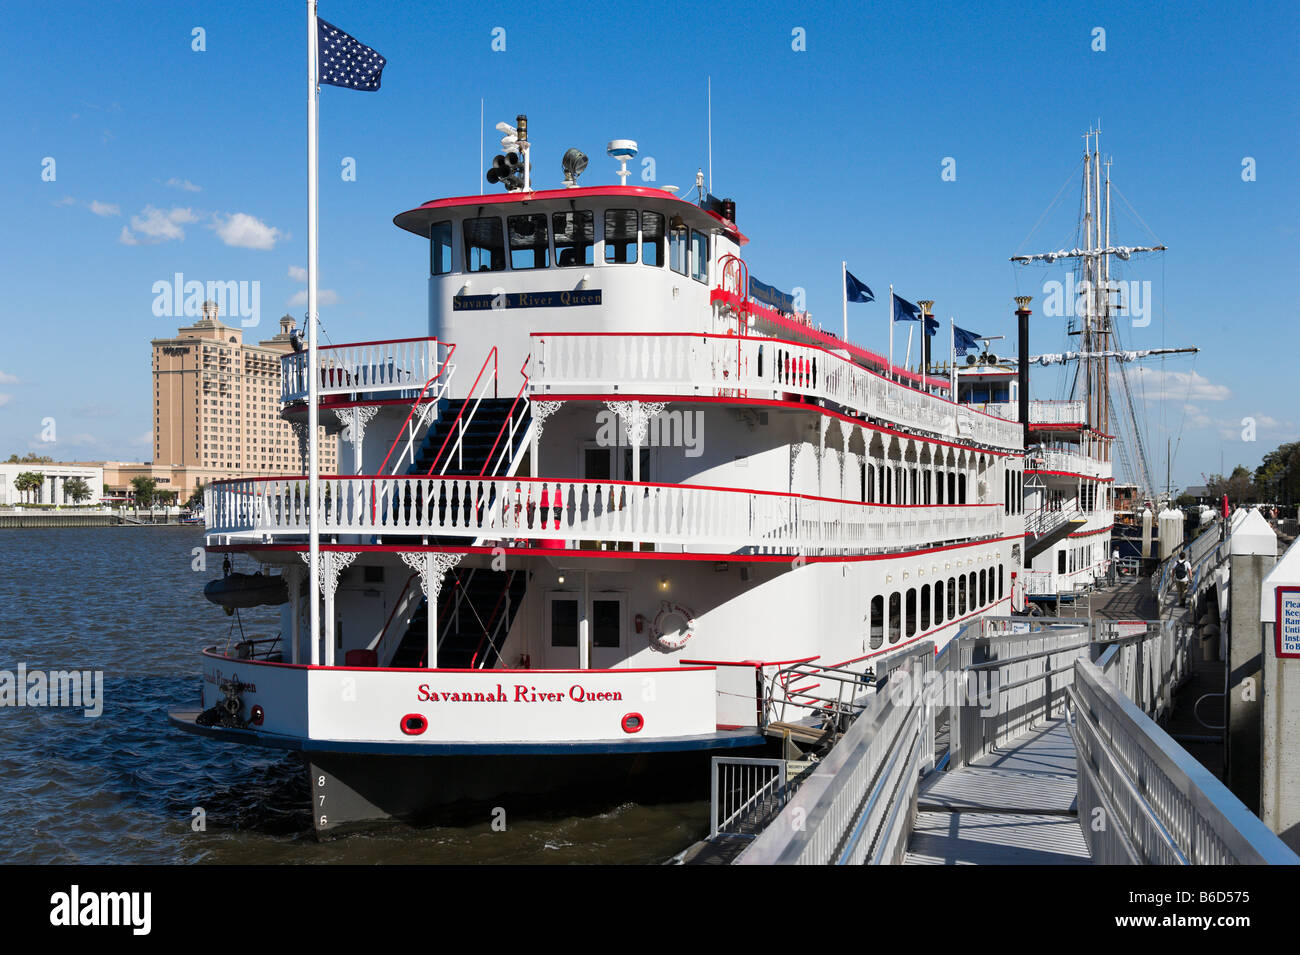 Savannah river boat casino free poker tournament phoenix